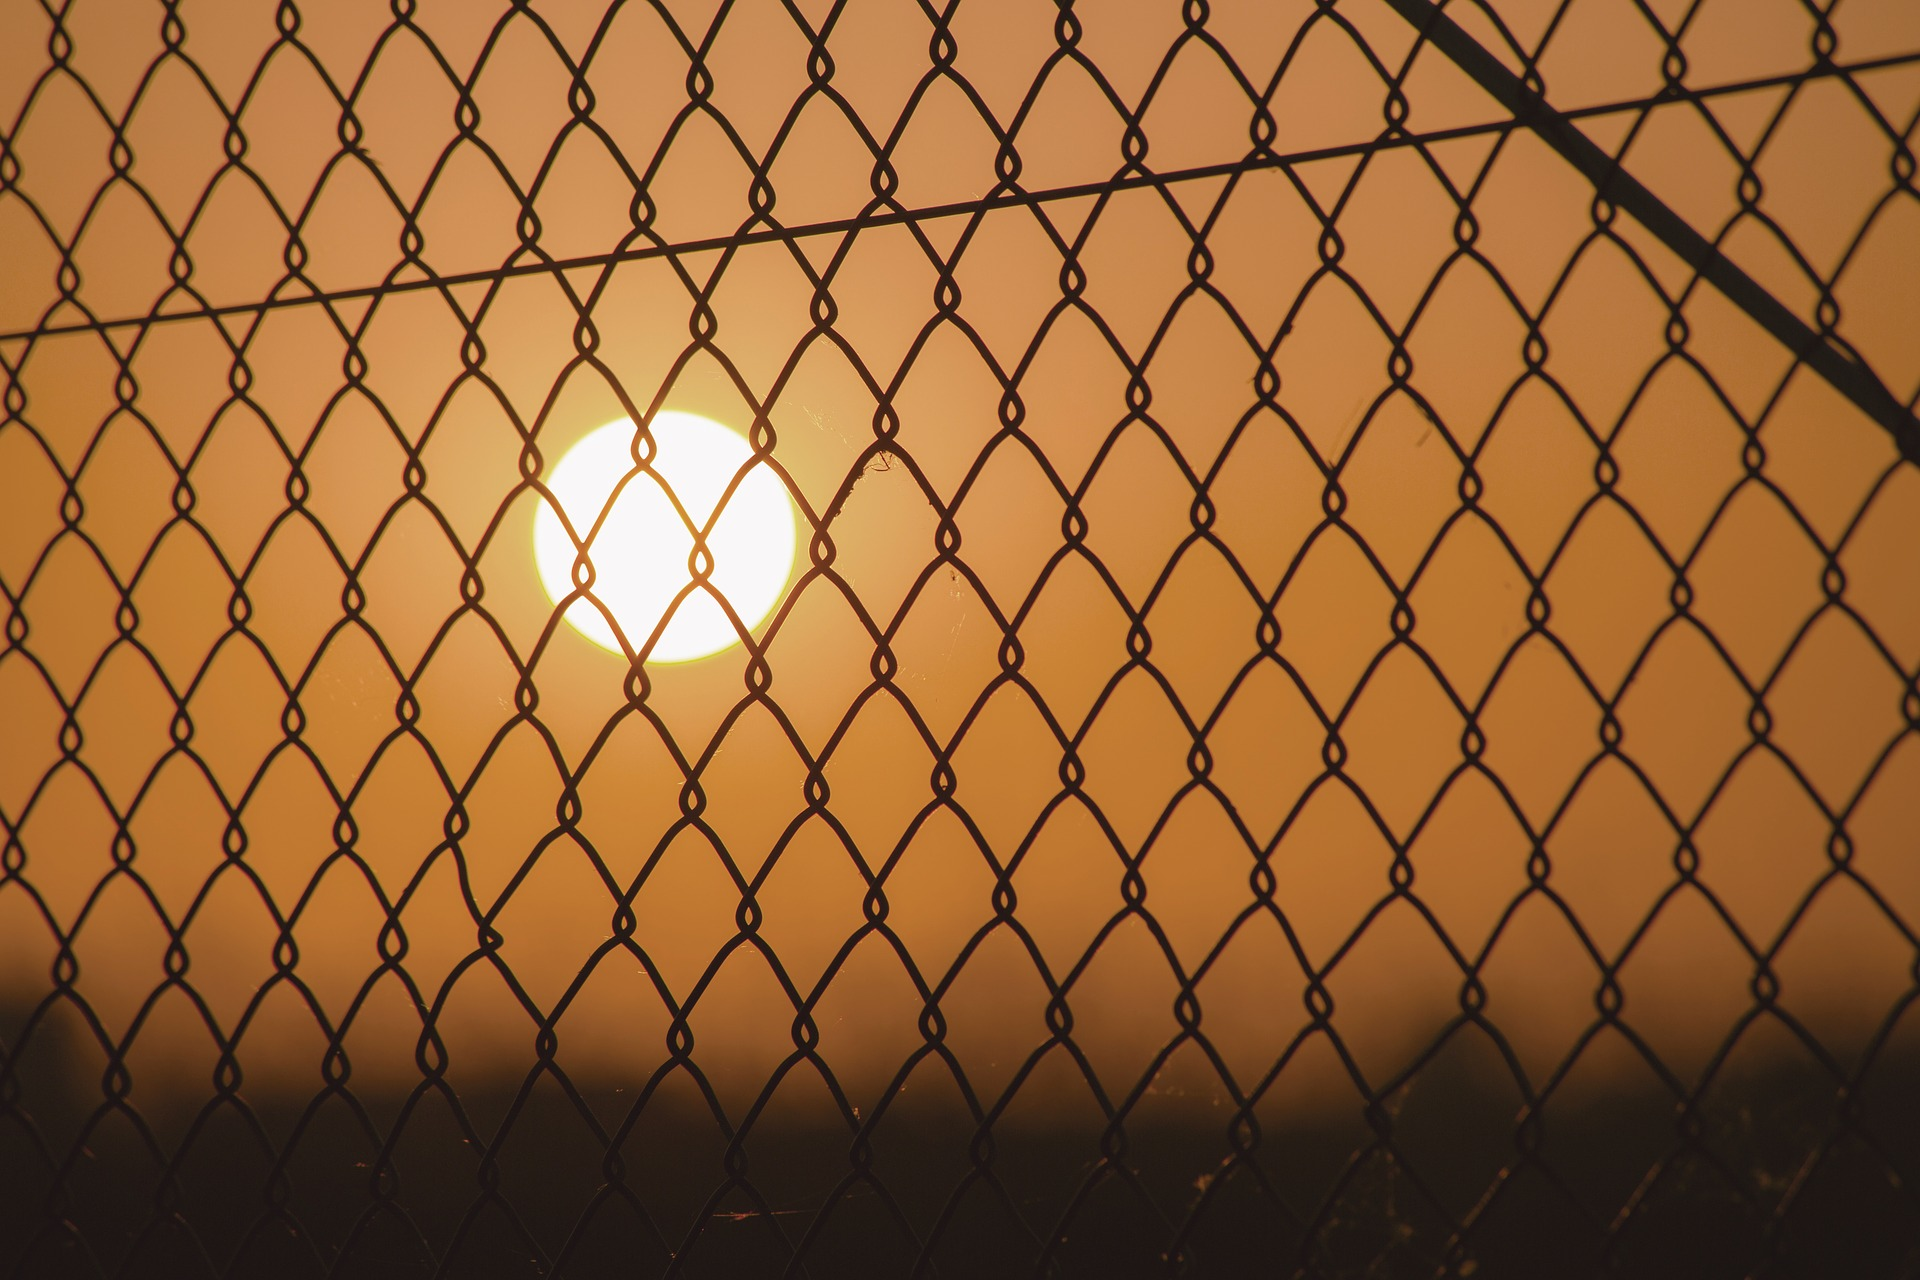 A picture chain link security fencing